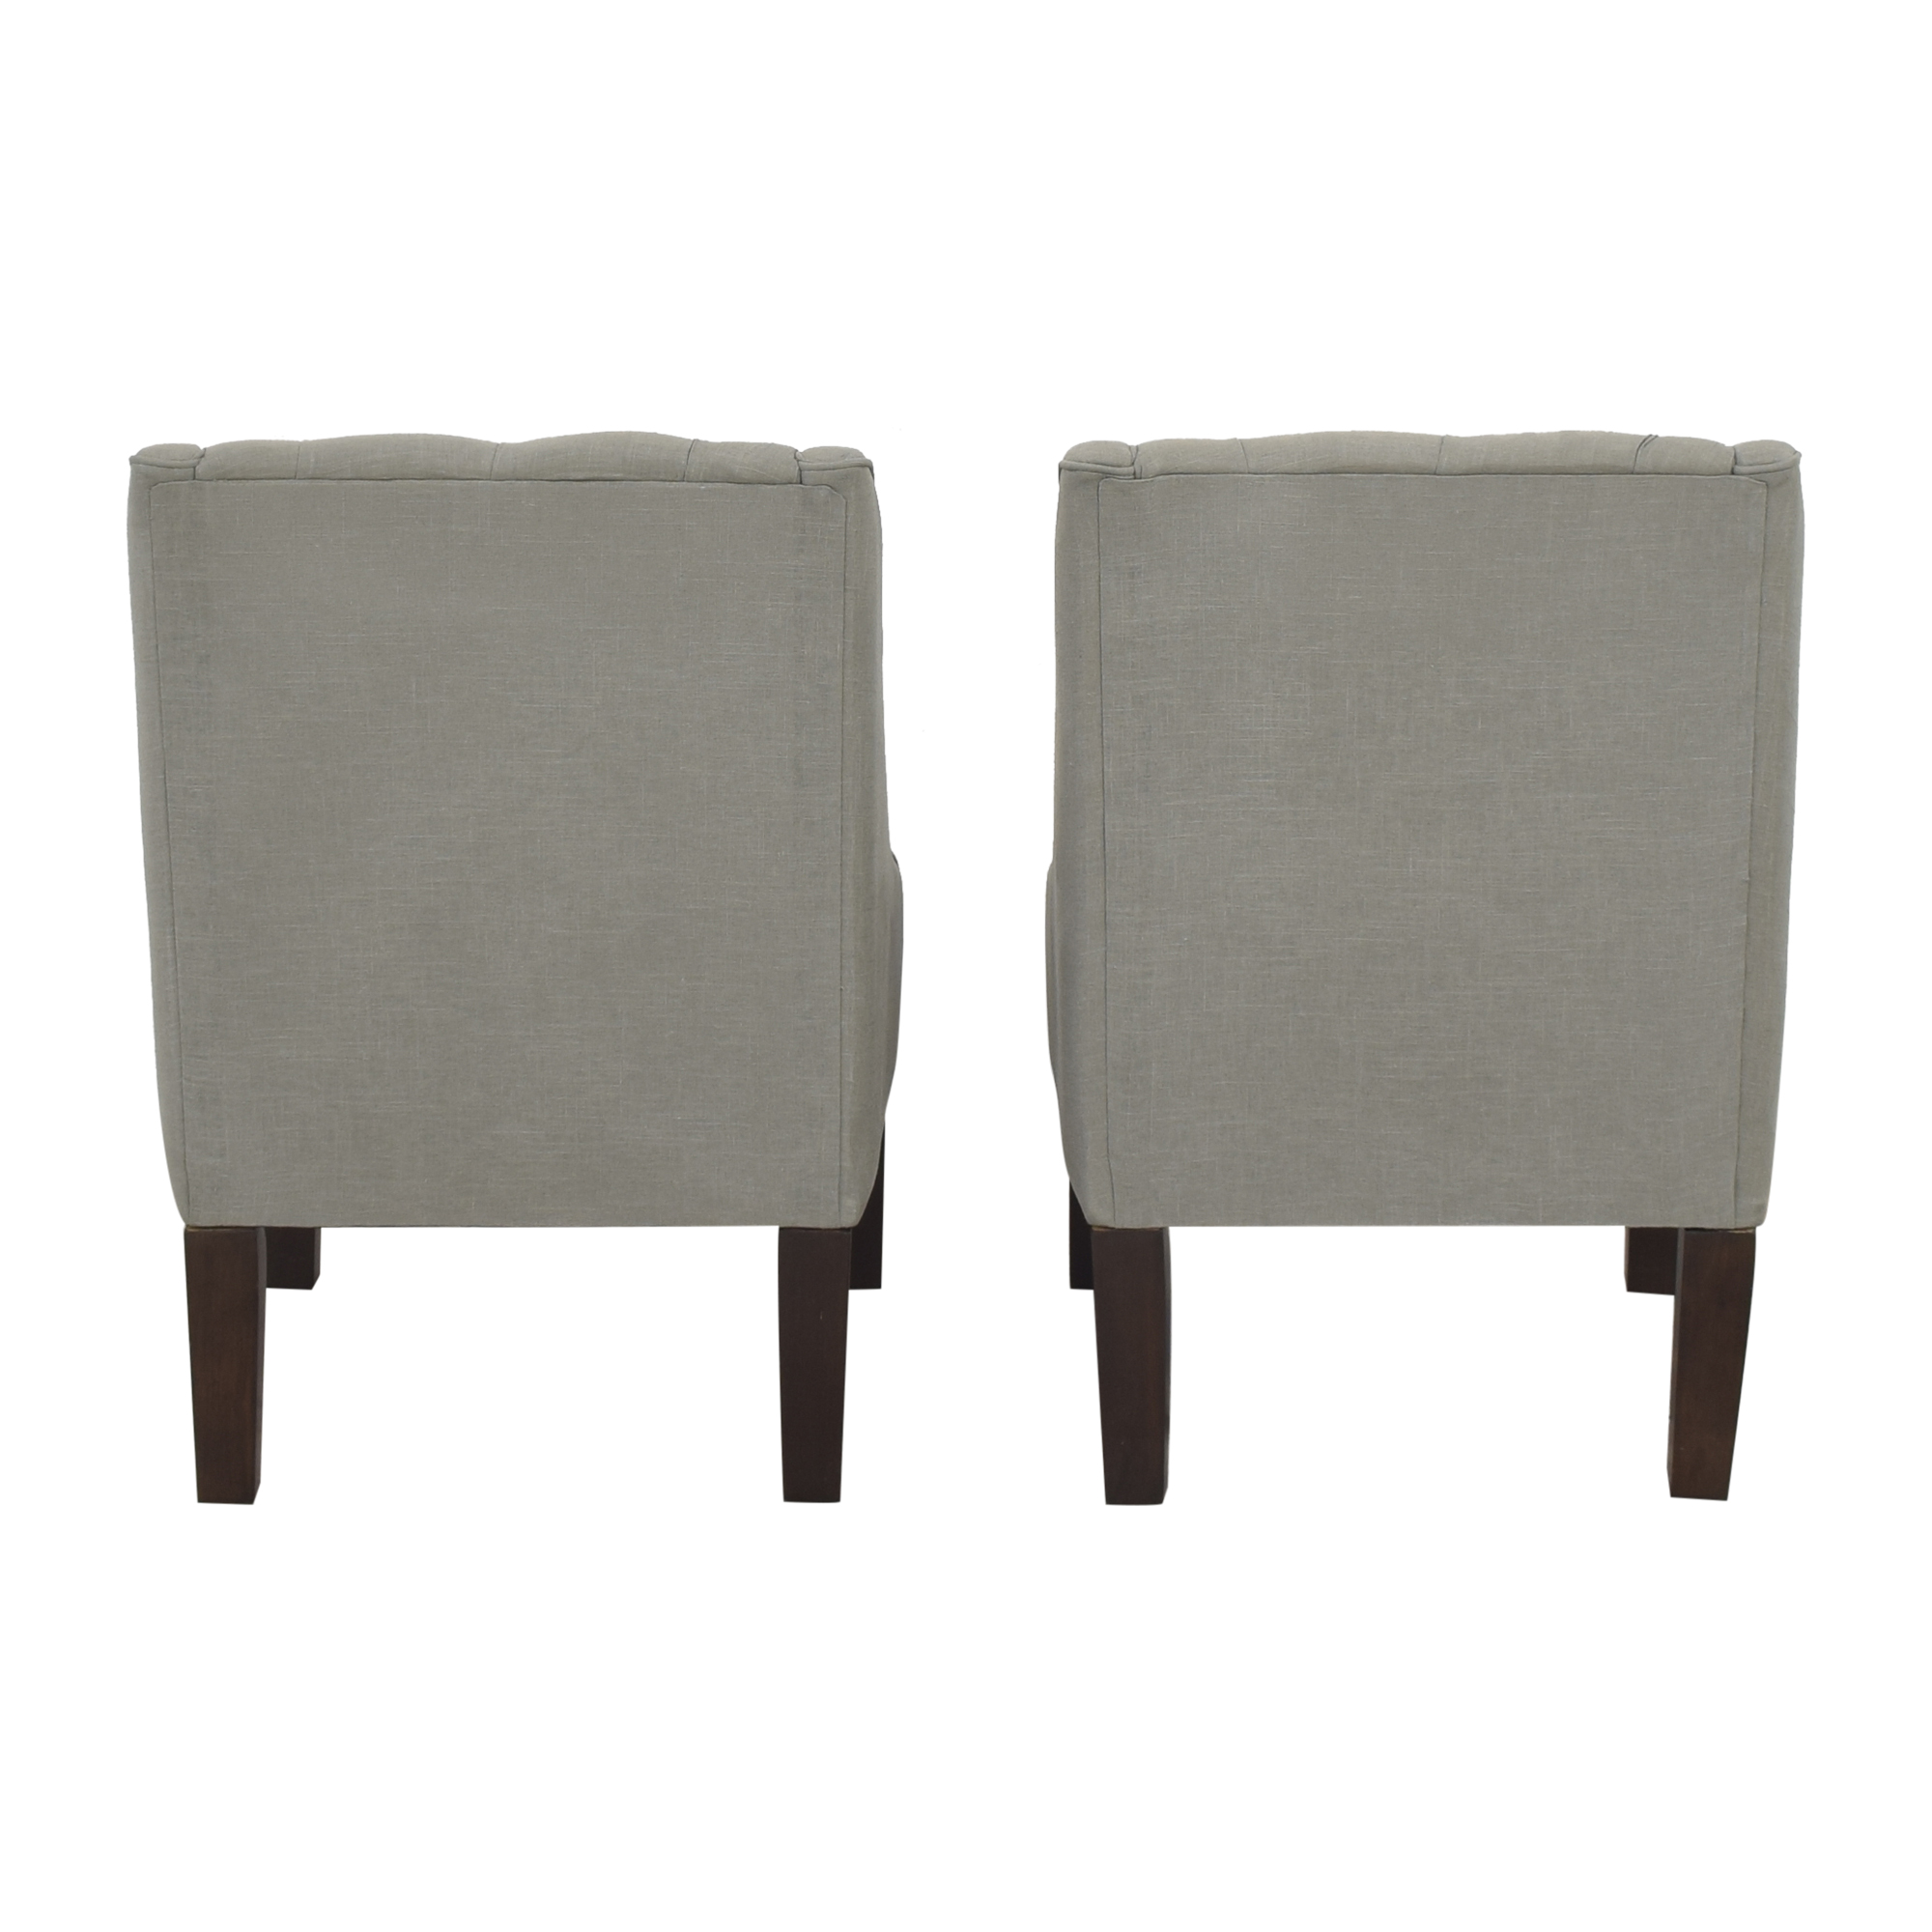 buy Skyline Furniture Tufted Dining Chairs Skyline Furniture Dining Chairs